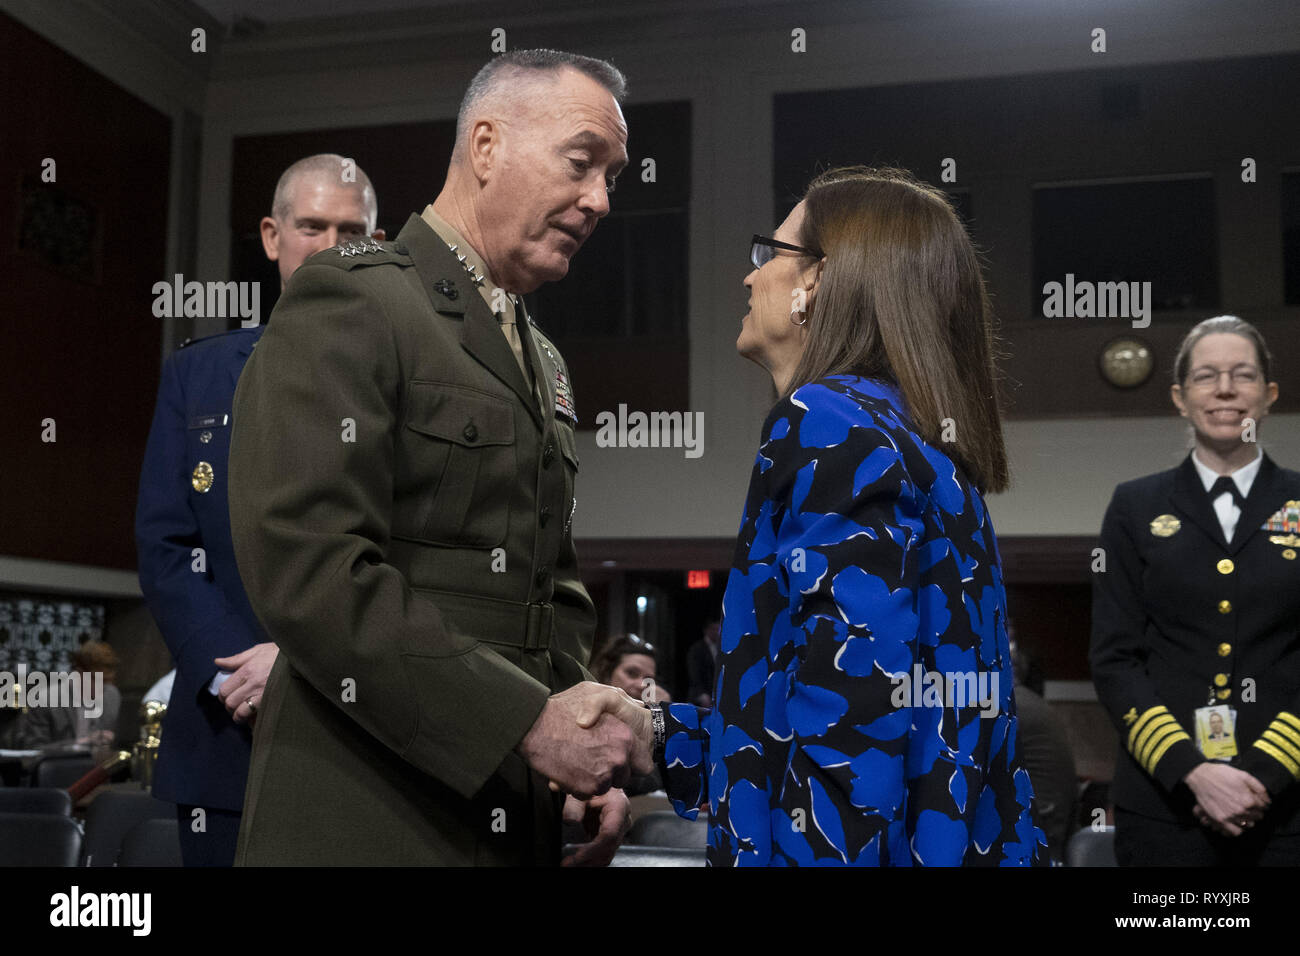 Washington, District of Columbia, USA. 14th Mar, 2019. General JOSEPH F. DUNFORD, Jr. greets Senator Martha McSally (R-AZ) at a Senate Armed Services Committee Hearing on Department of Defense Budget Posture, March 14, 2019 Credit: Douglas Christian/ZUMA Wire/Alamy Live News Stock Photo